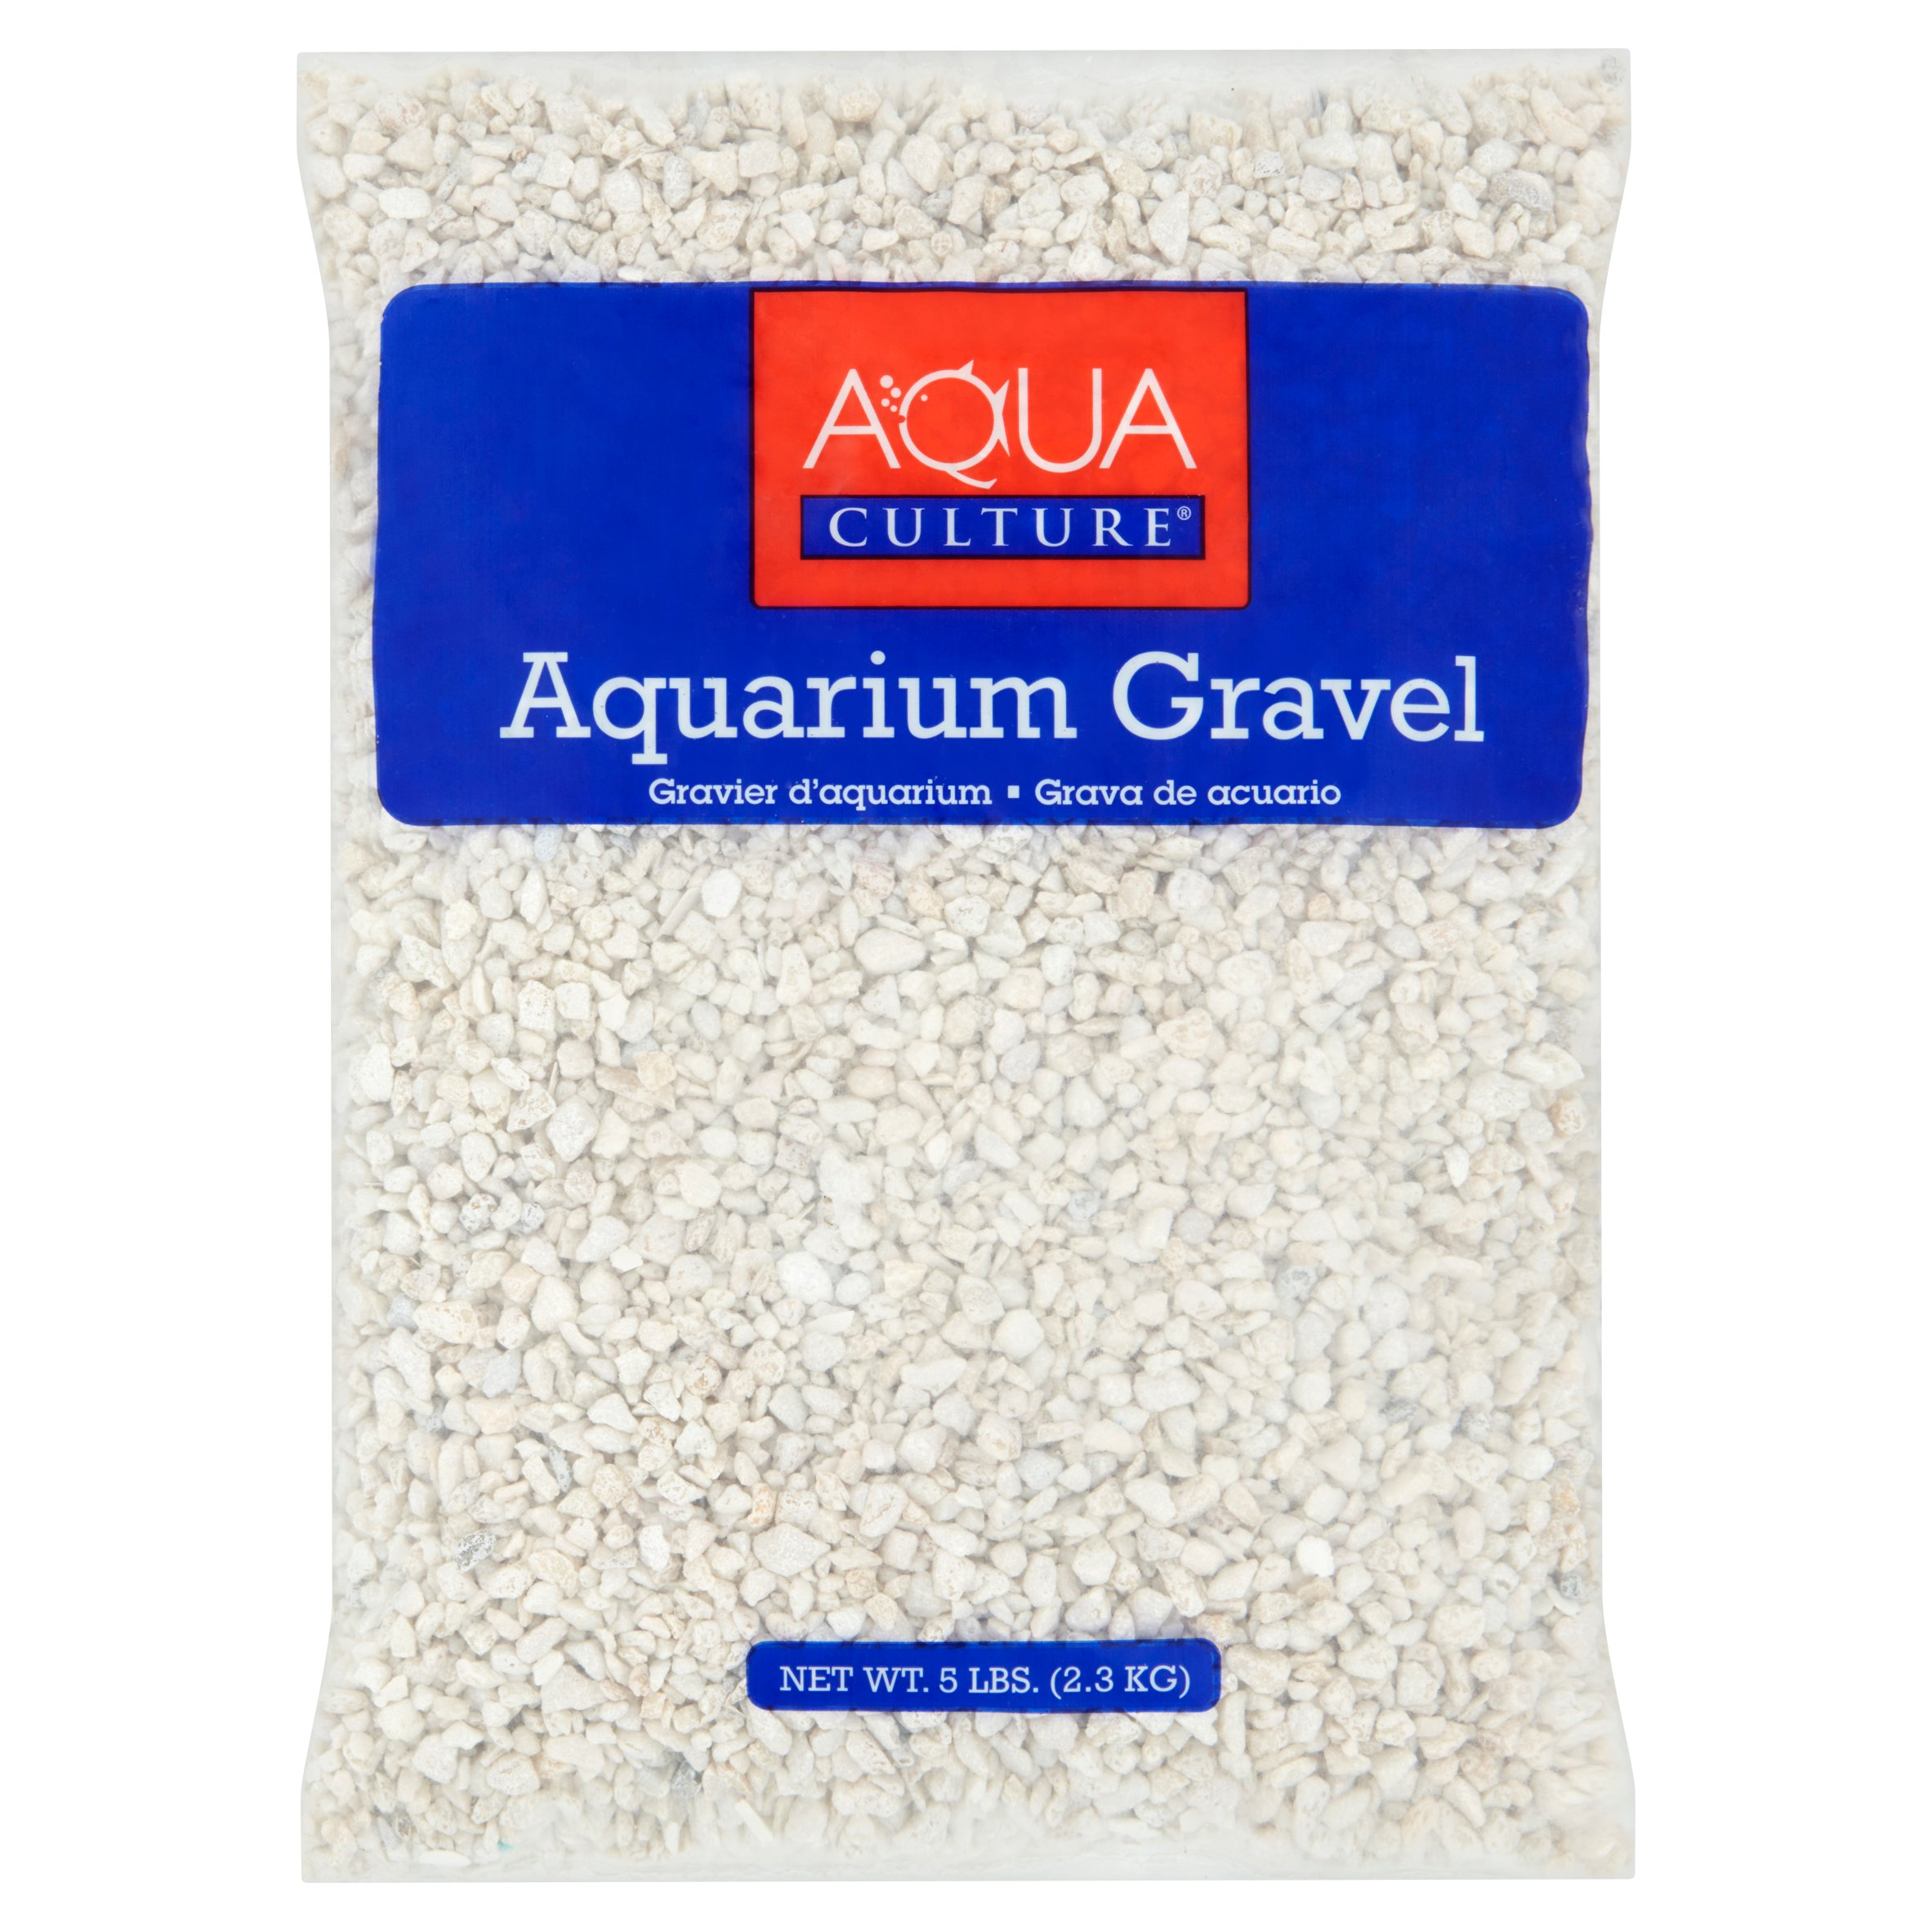 Aqua Culture White Chips Aquarium Gravel, 5 lb by Clifford W. Estes Co, Inc